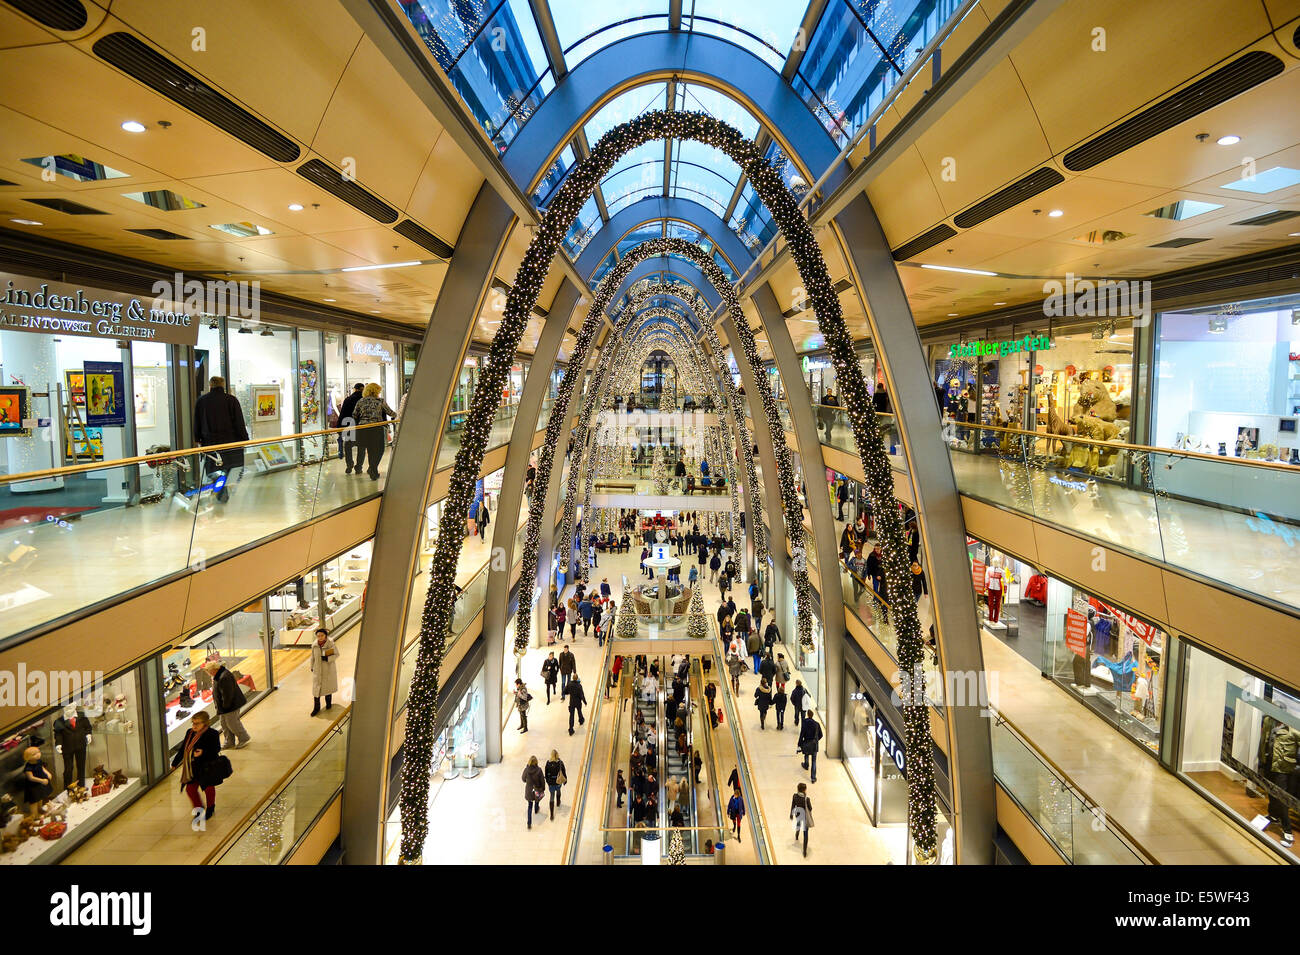 shopping center decorated for christmas europa passage hamburg stock photo 72475427 alamy. Black Bedroom Furniture Sets. Home Design Ideas